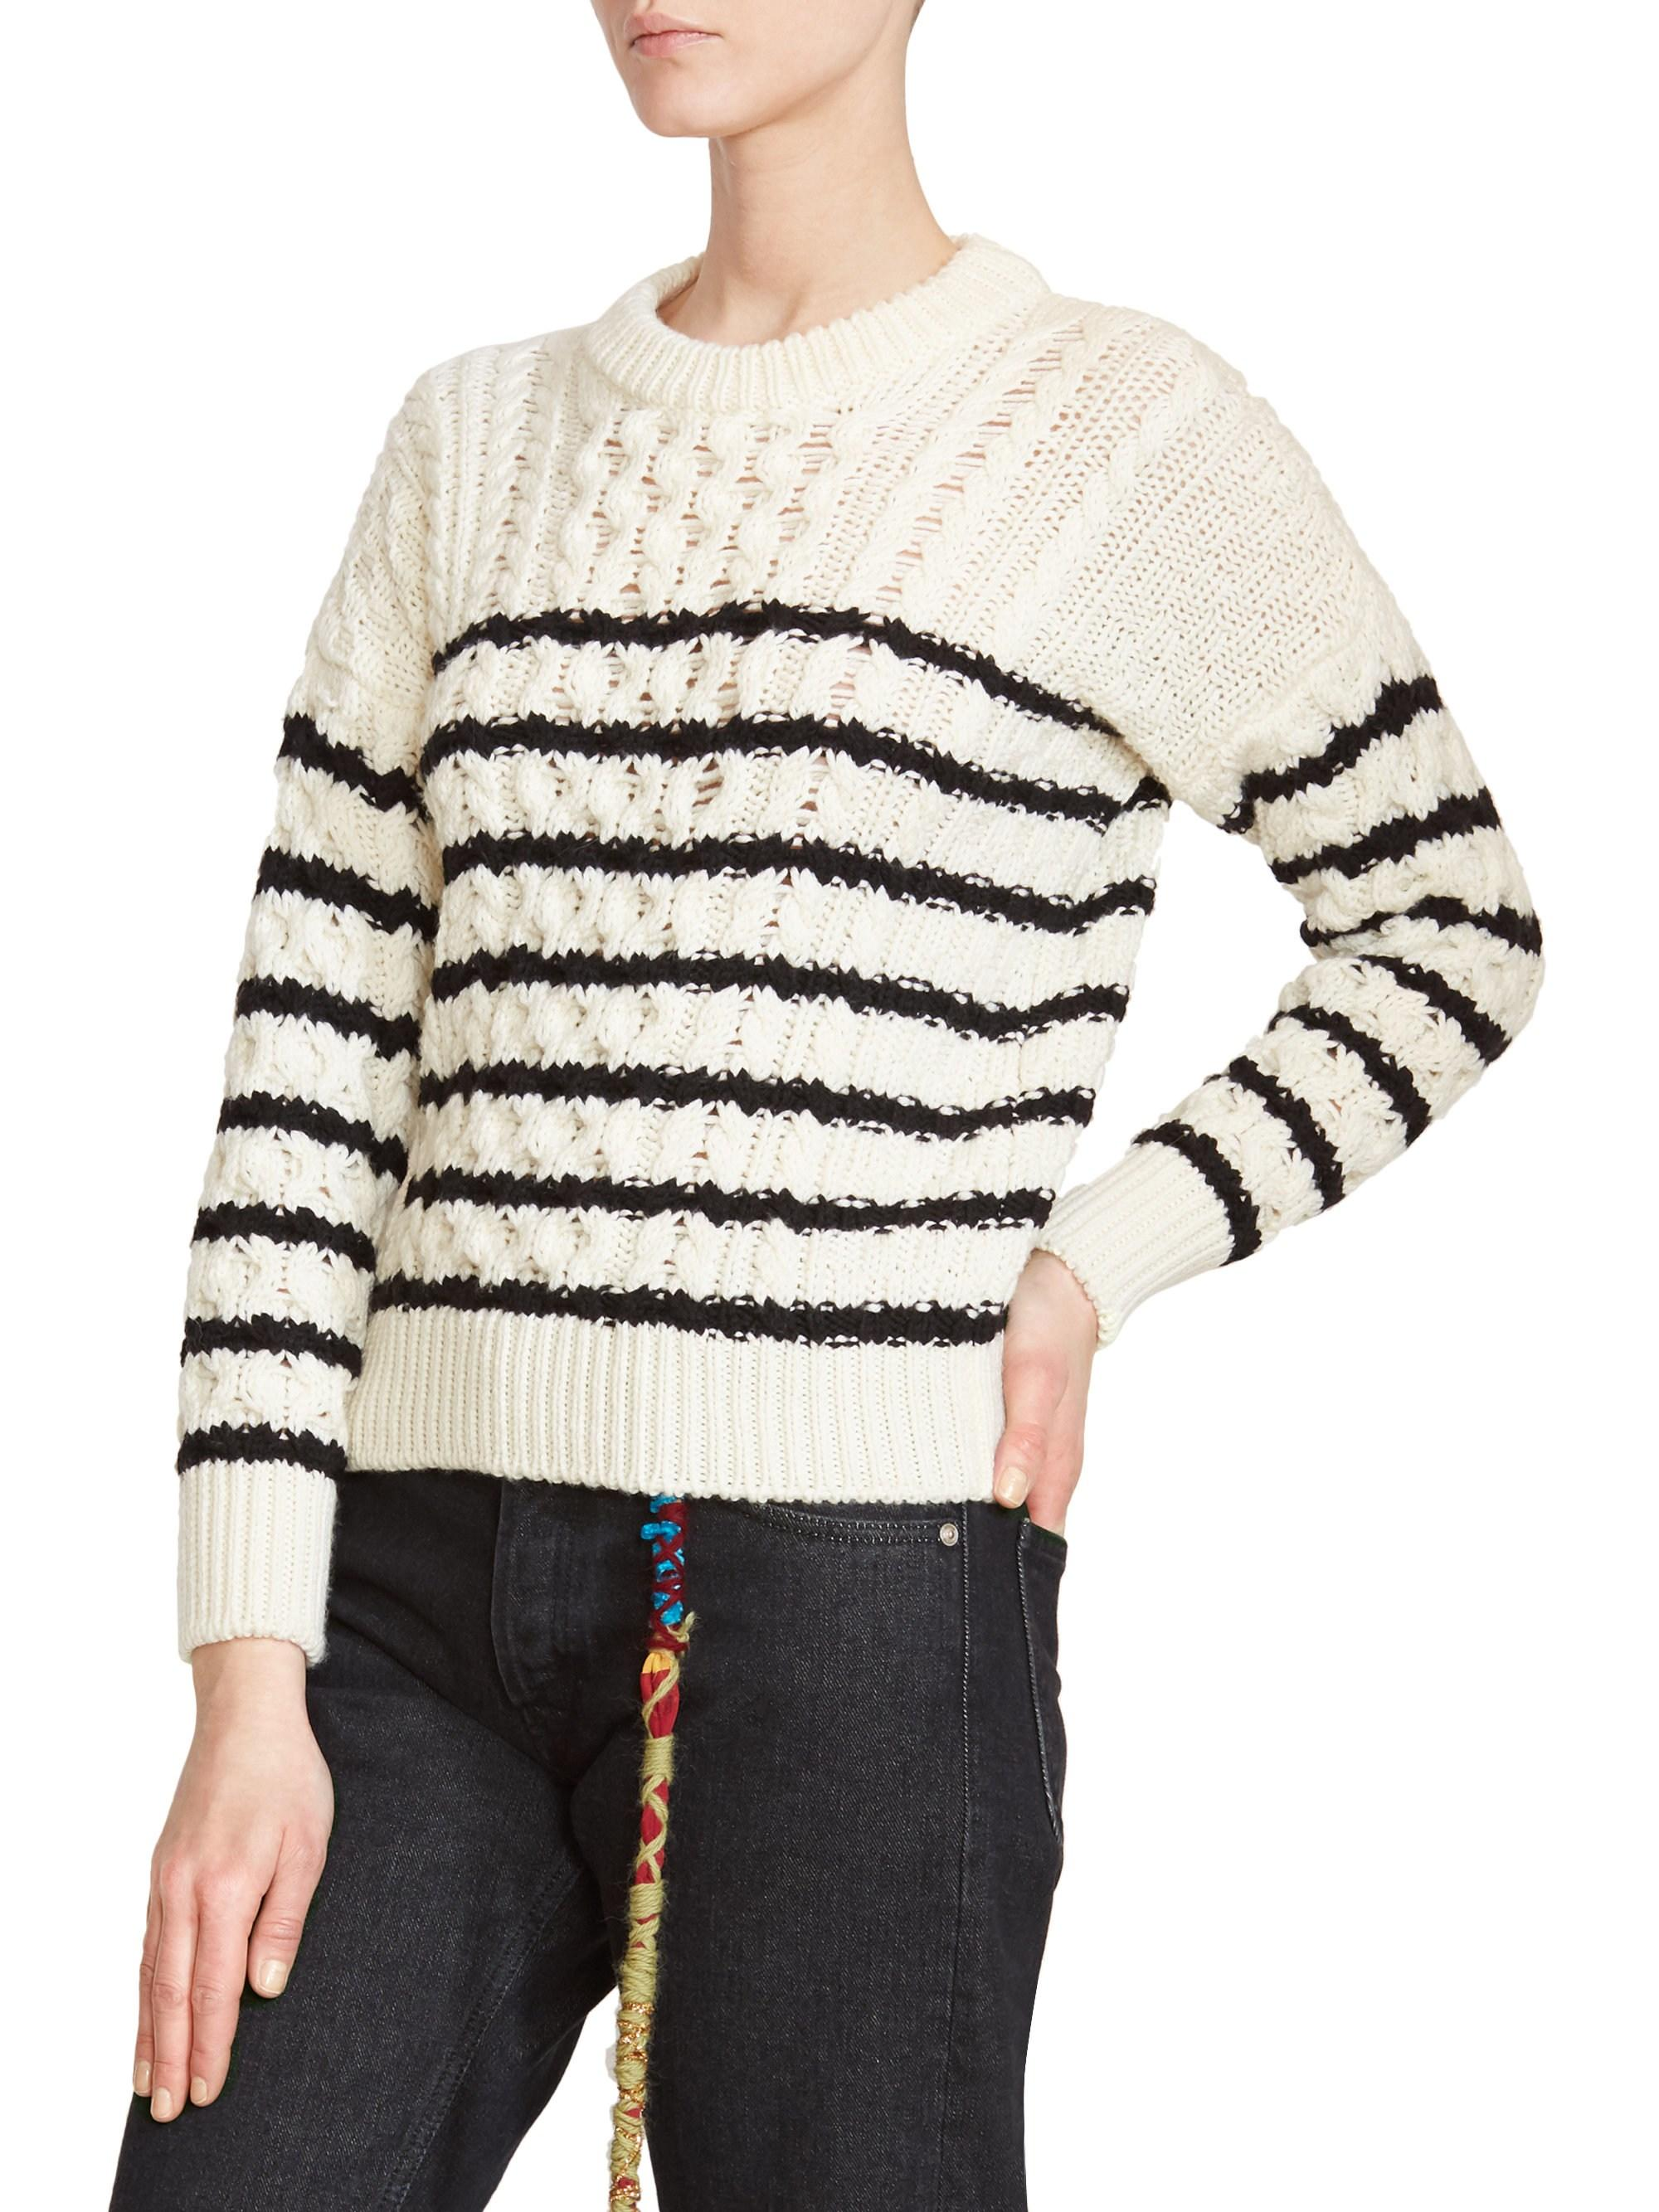 5b7c955cf0 Loewe Stripe Wool Cable Knit Sweater in White - Lyst